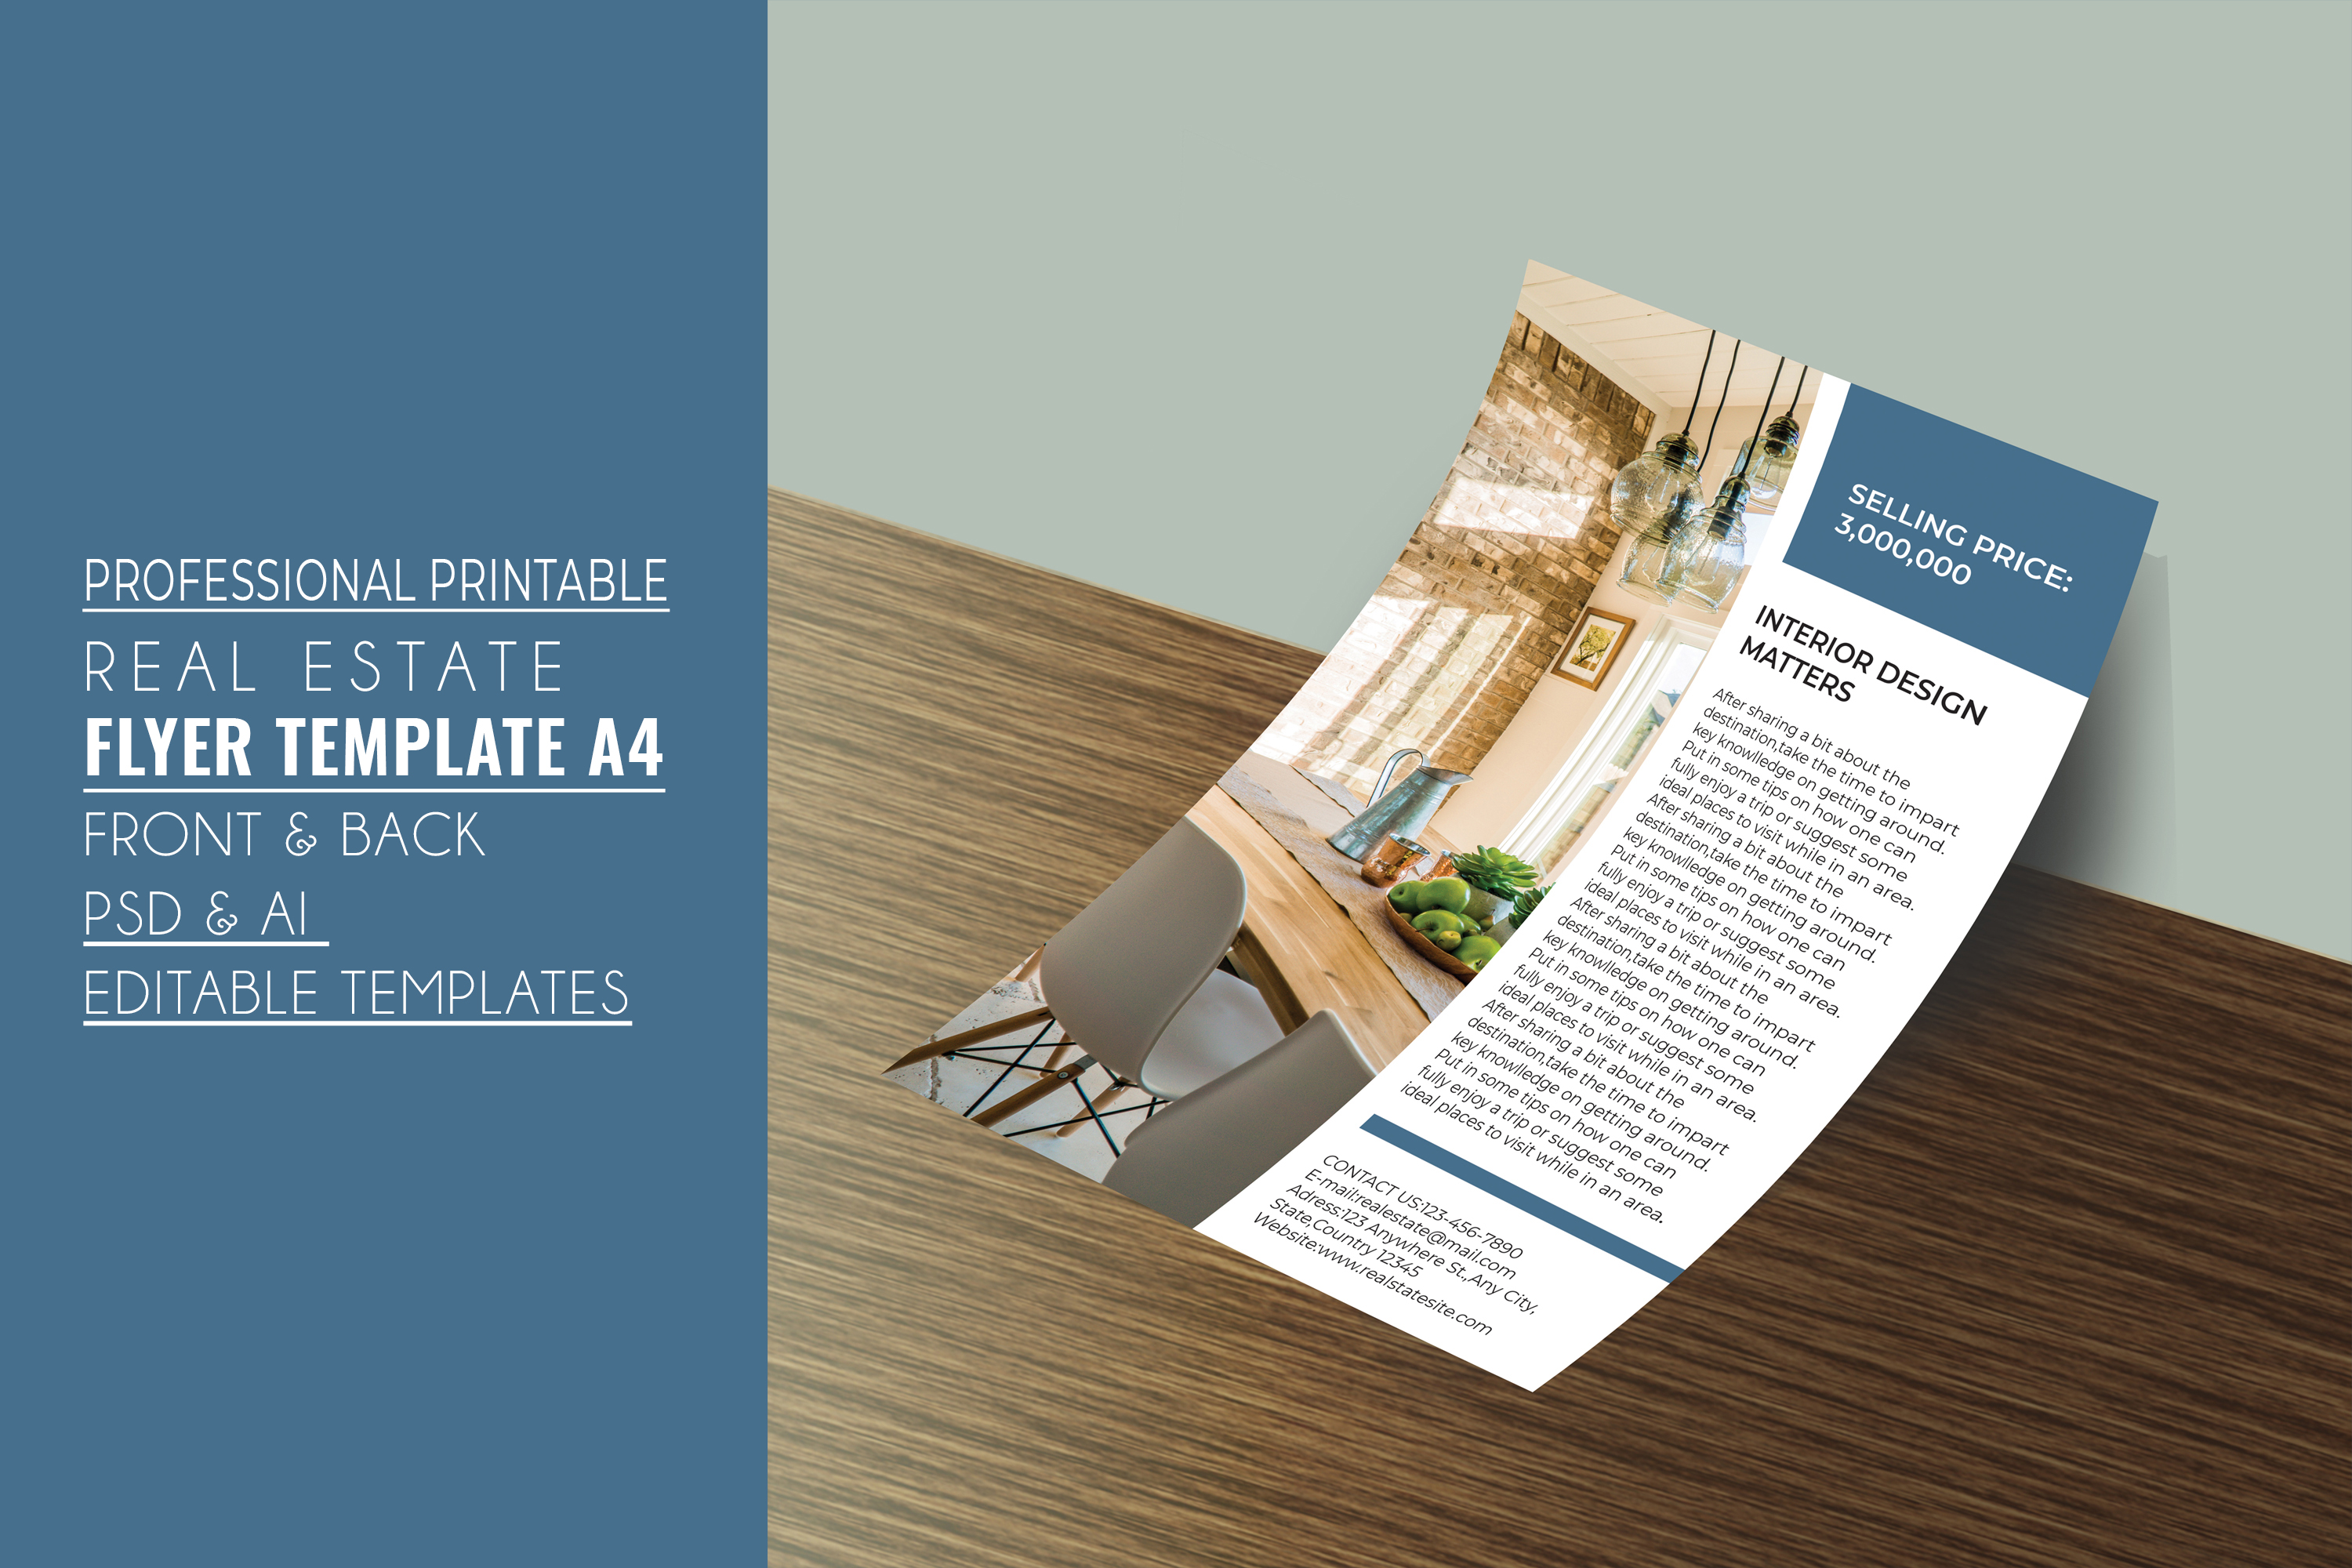 Professional Real Estate Flyer A4 - Printable Templates example image 3